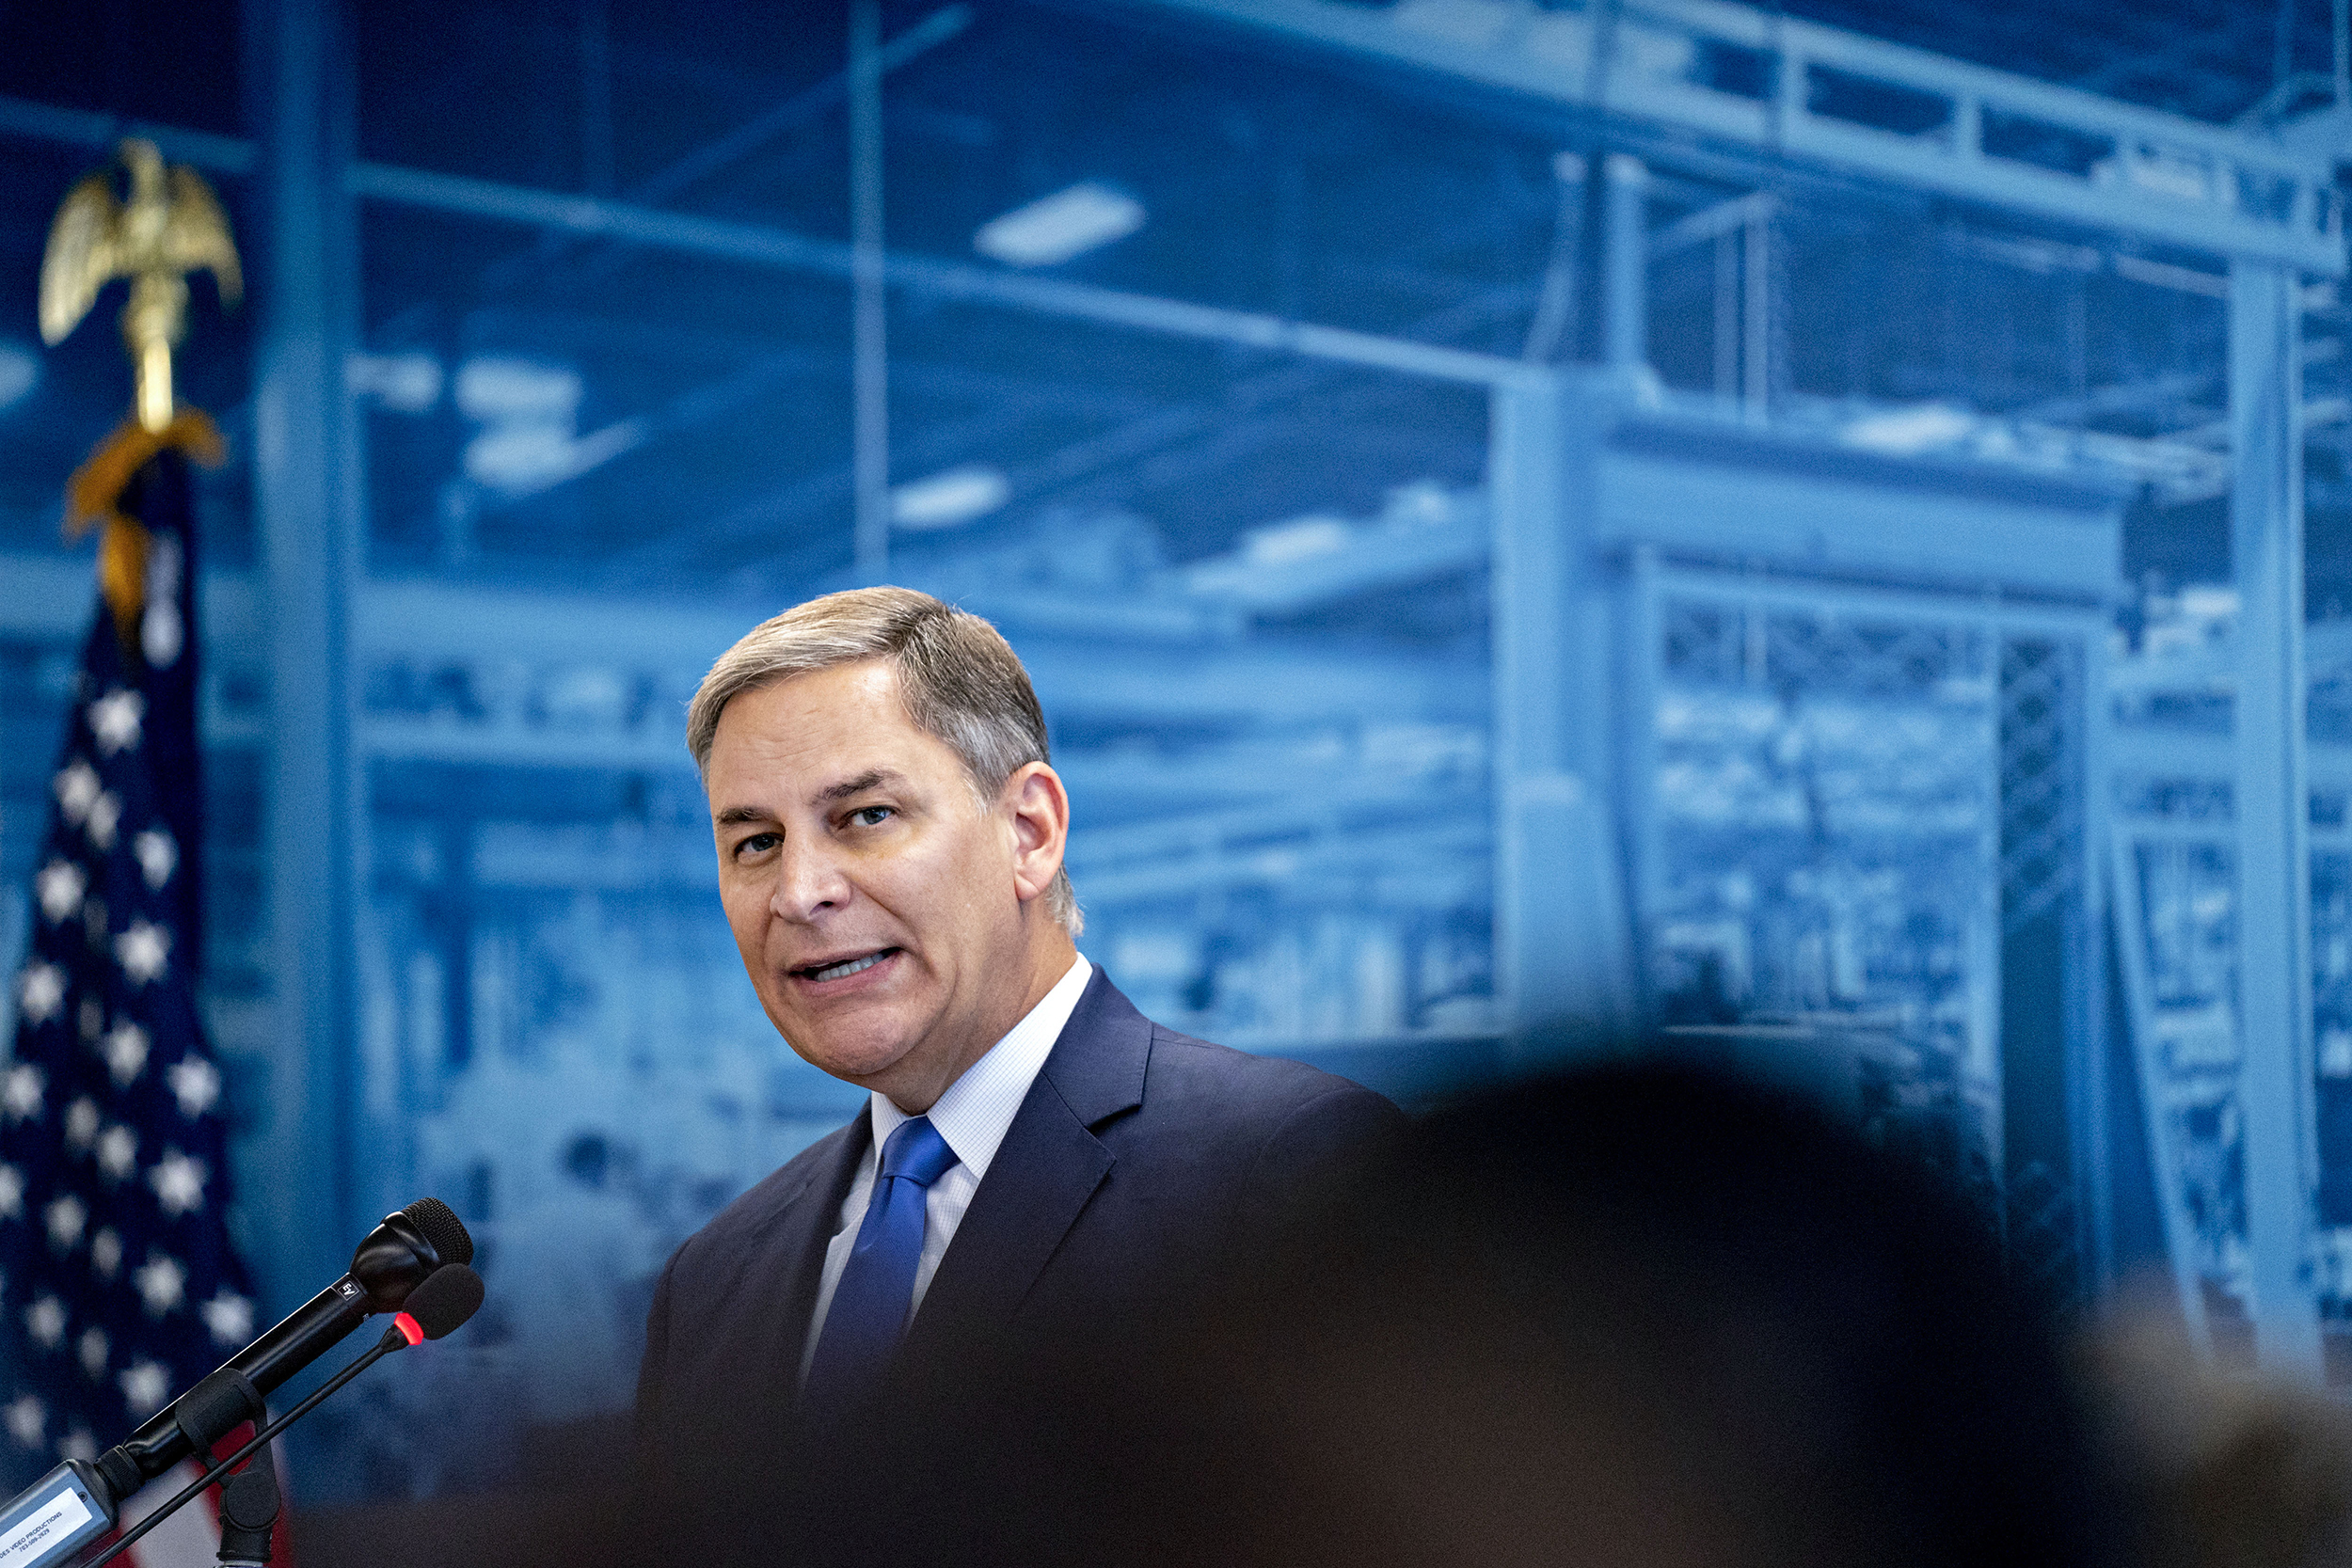 Manufacturing CEO: Before Biden, it felt like we were fighting the pandemic alone